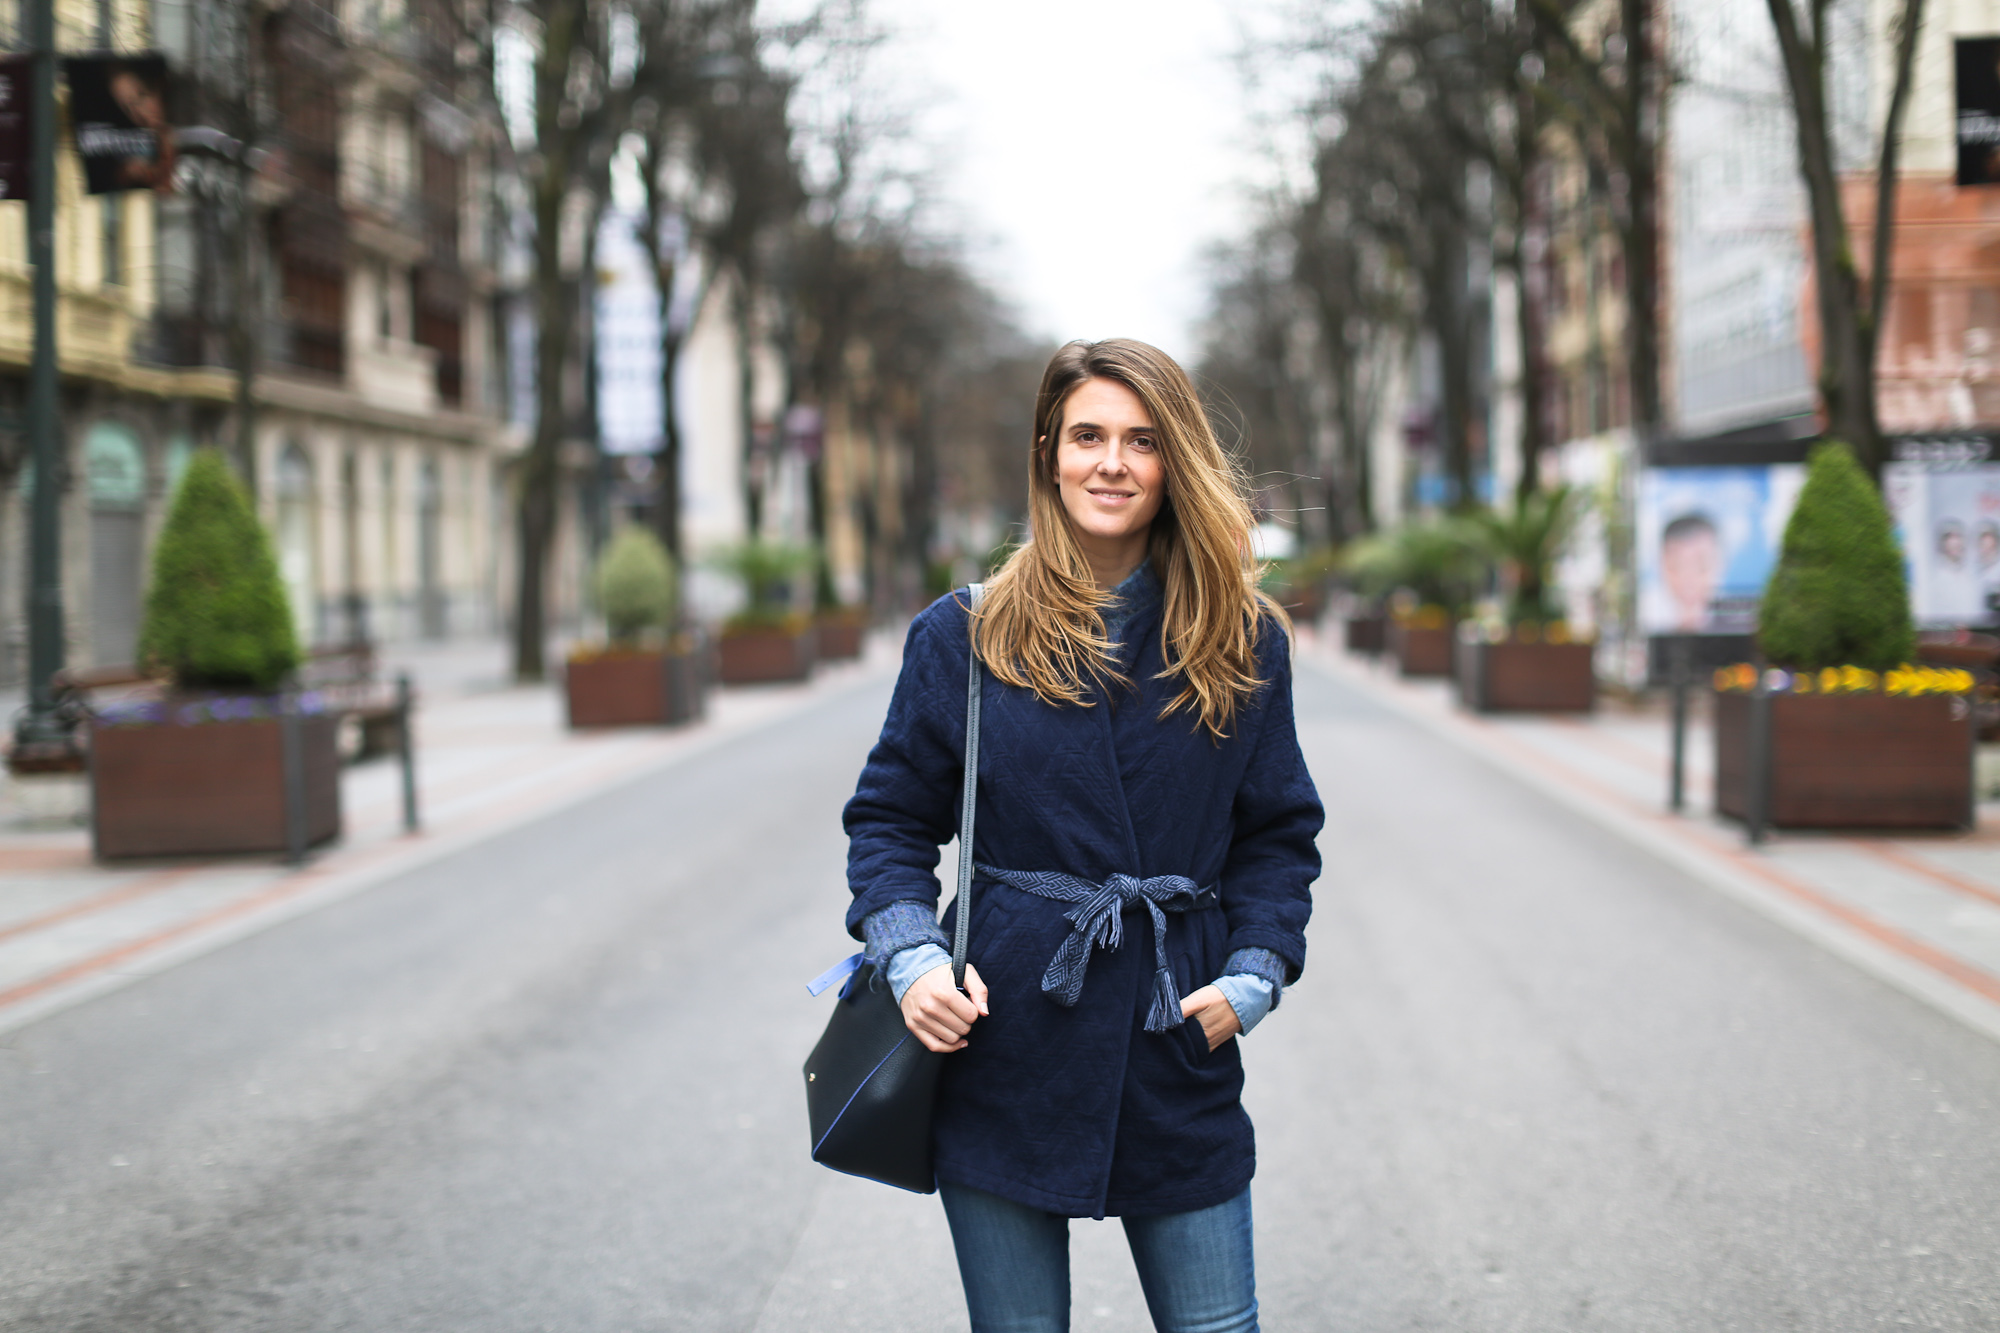 Clochet_streetstyle_pepejeans_skinny_jeans_purificaciongarcia_bucket_bag-9